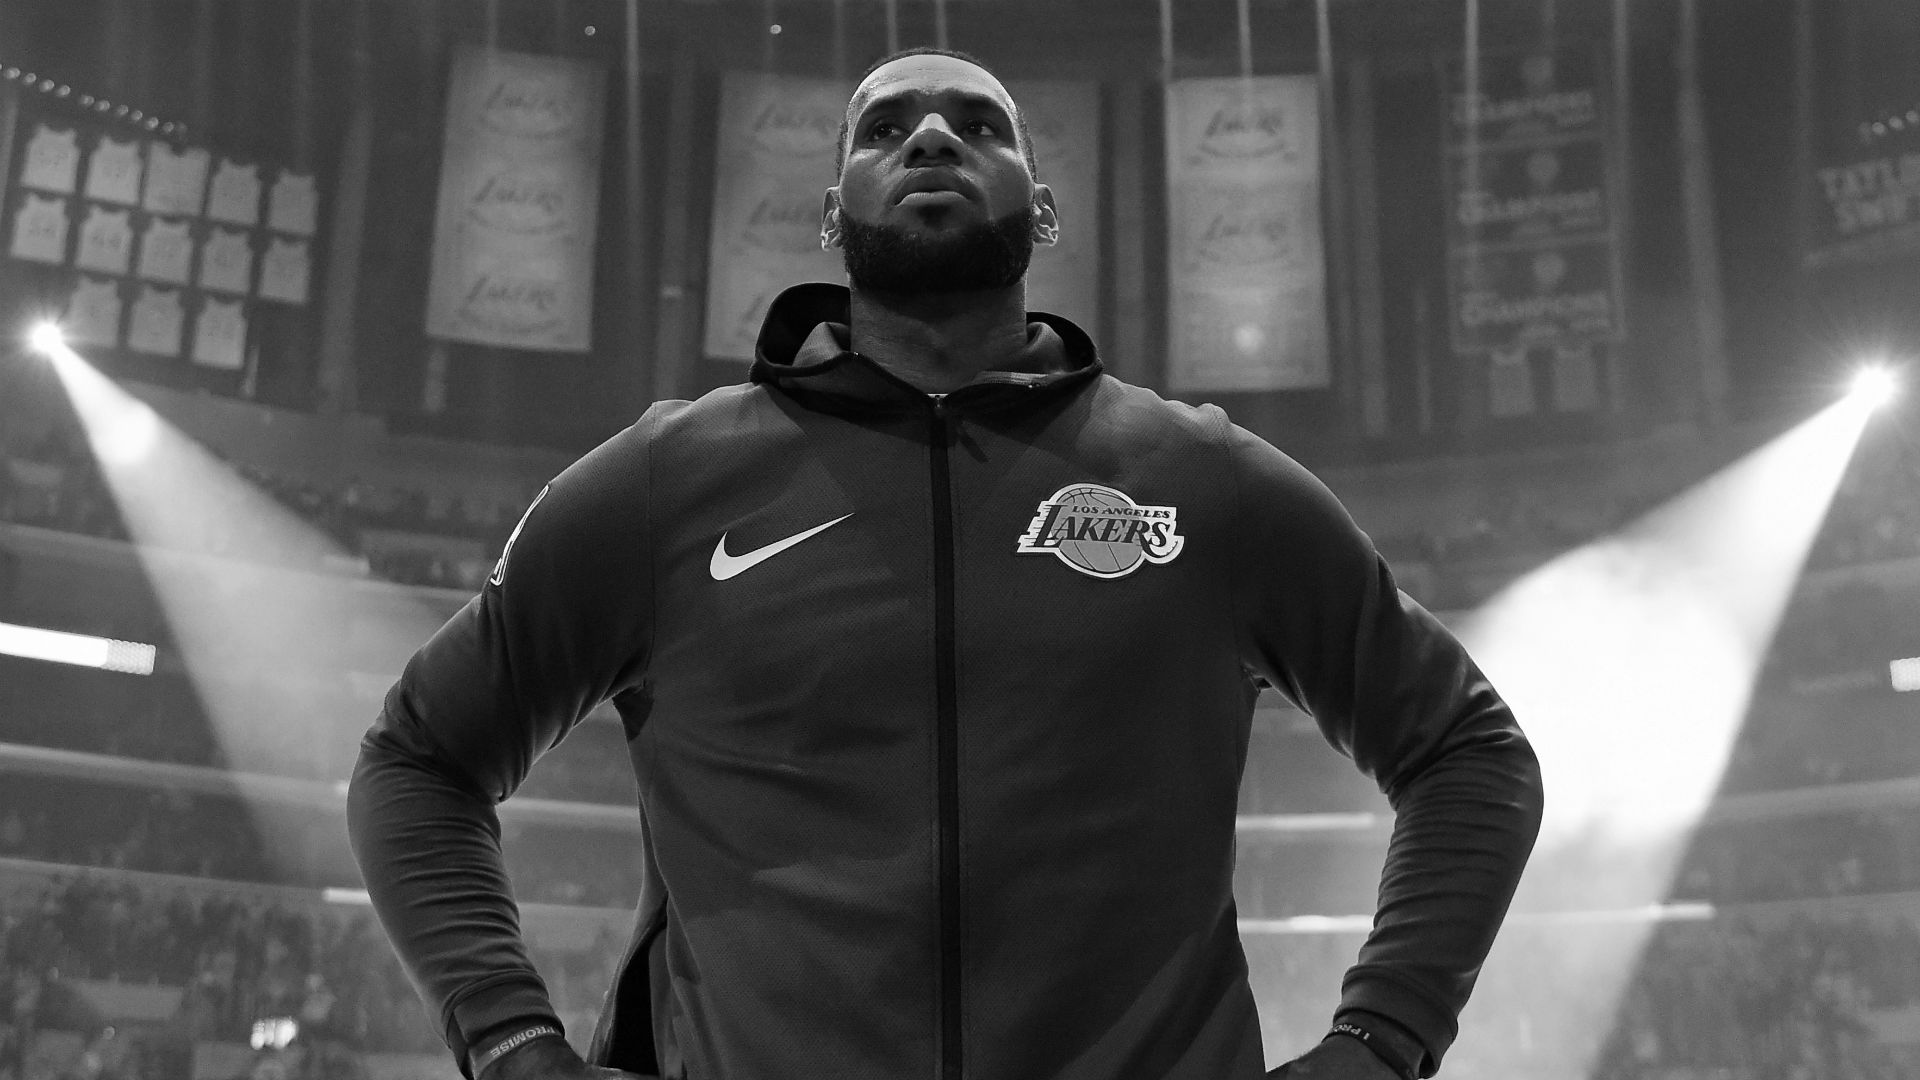 All eyes will be on LeBron James as he enters his second season with the Los Angeles Lakers.